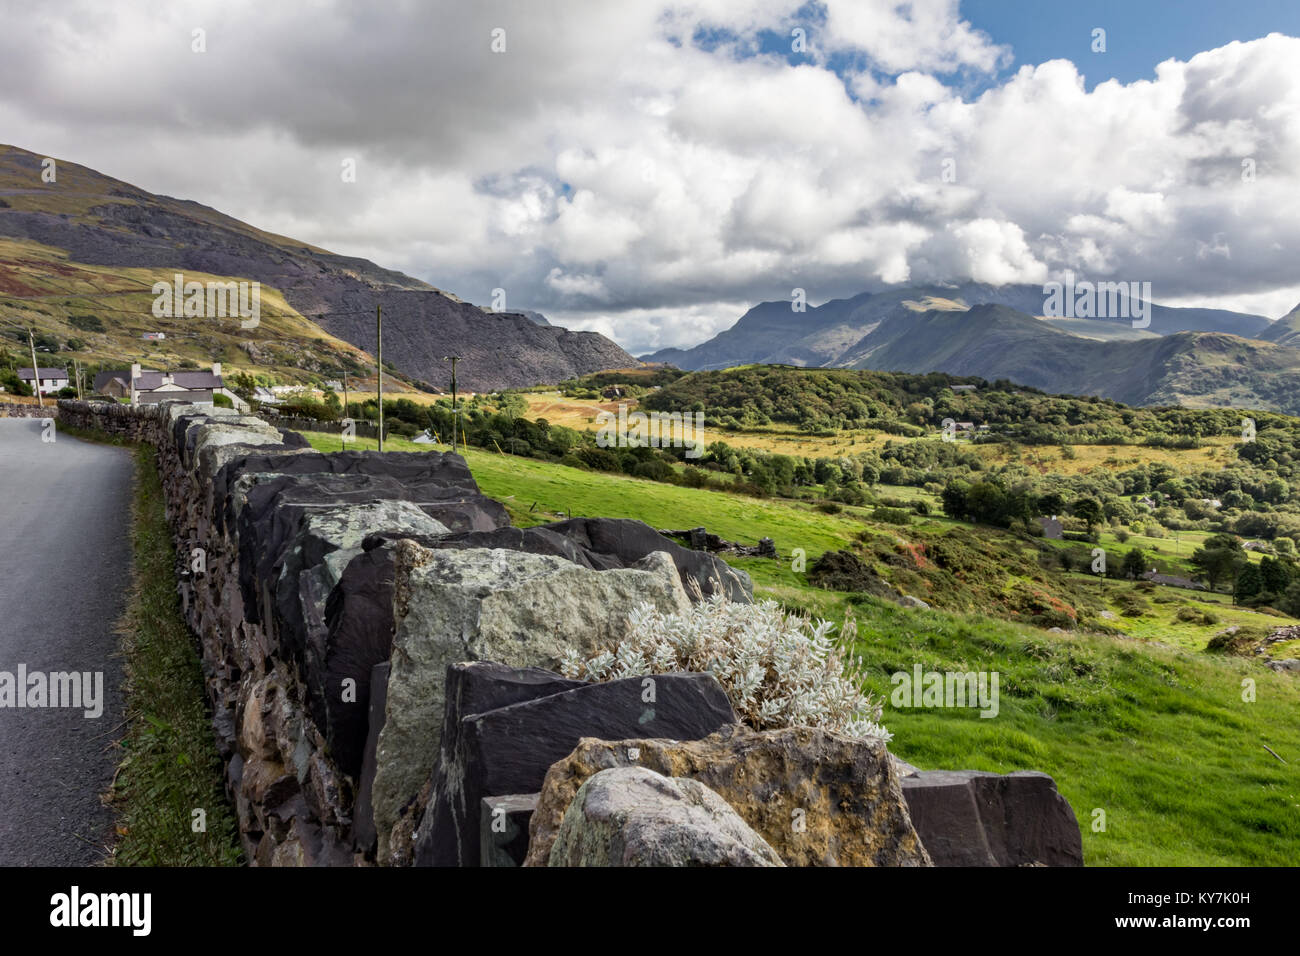 Landscape scene with dry stone wall in foreground and Mount Snowdon in background covered in clouds - Stock Image